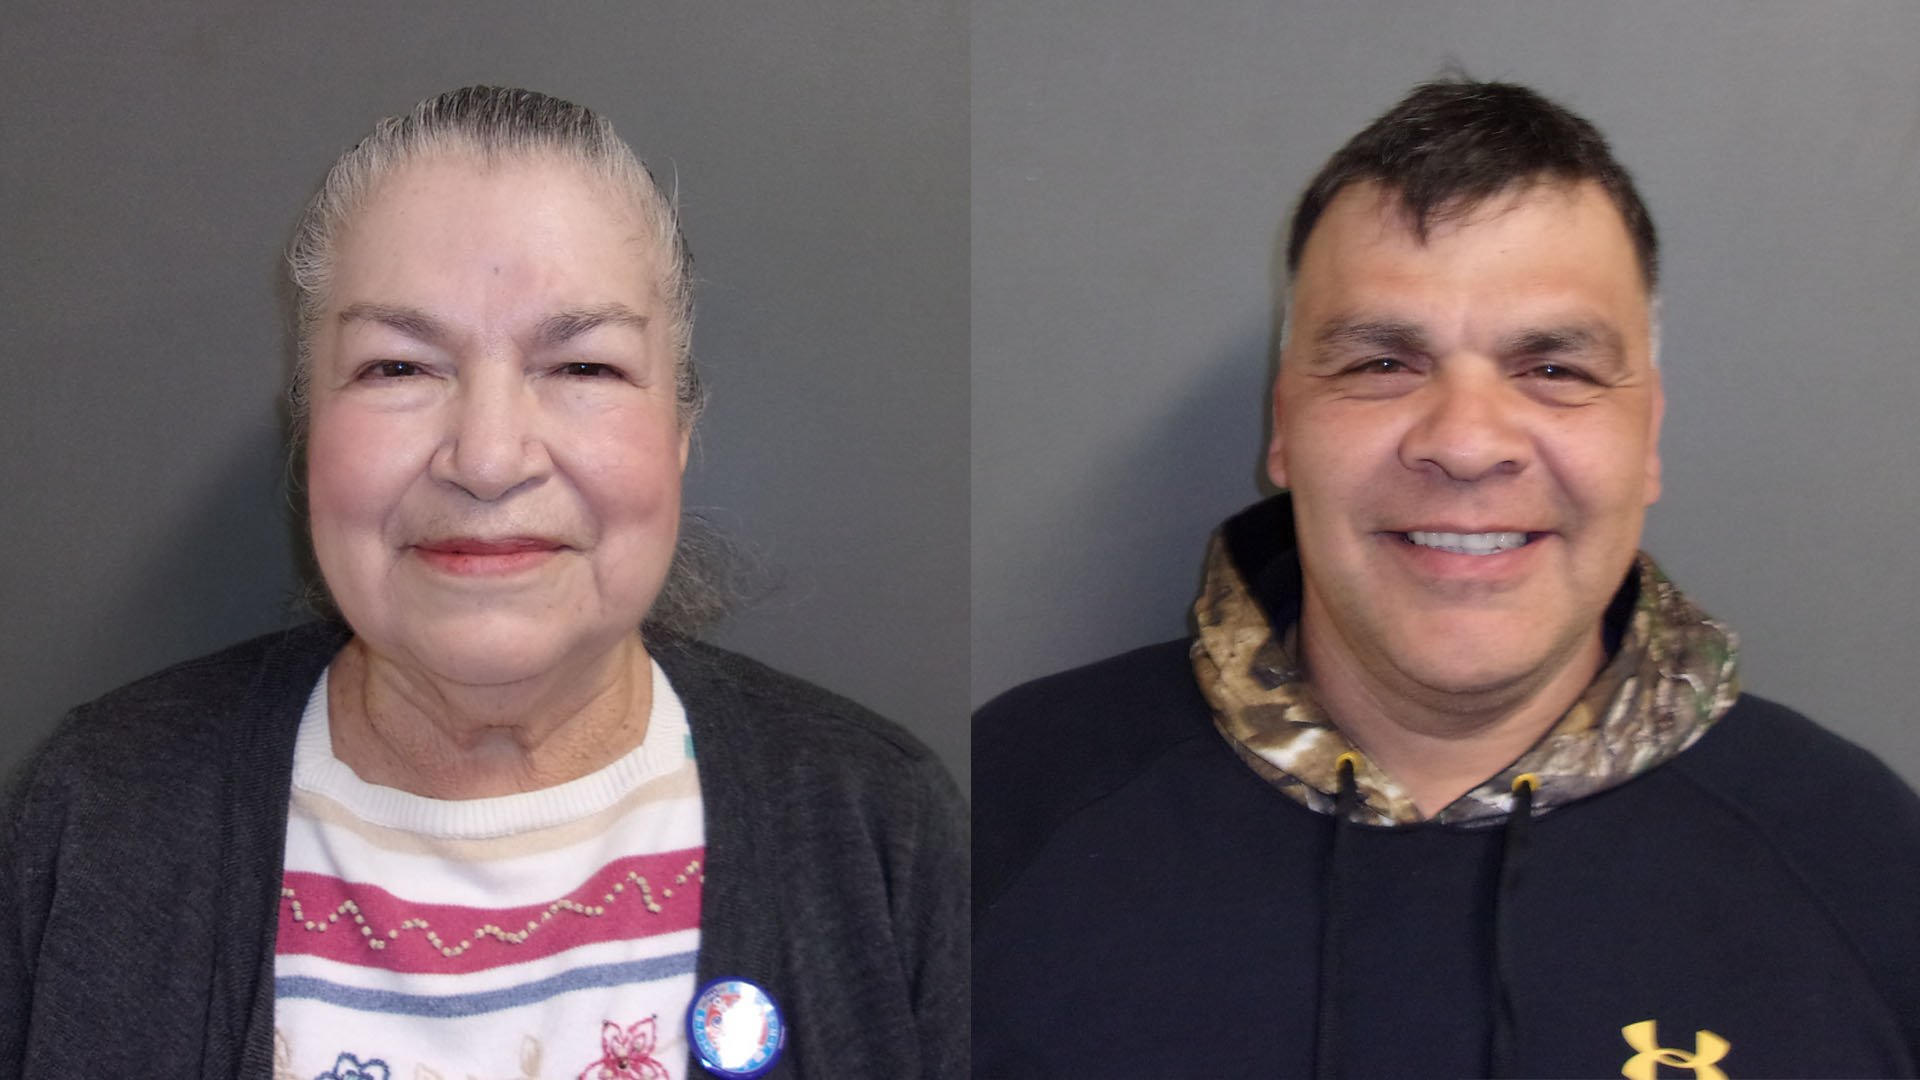 Rosita Flores Torres (left) and Robert Gonzalez (right) have both been arrested on charges of voter fraud.